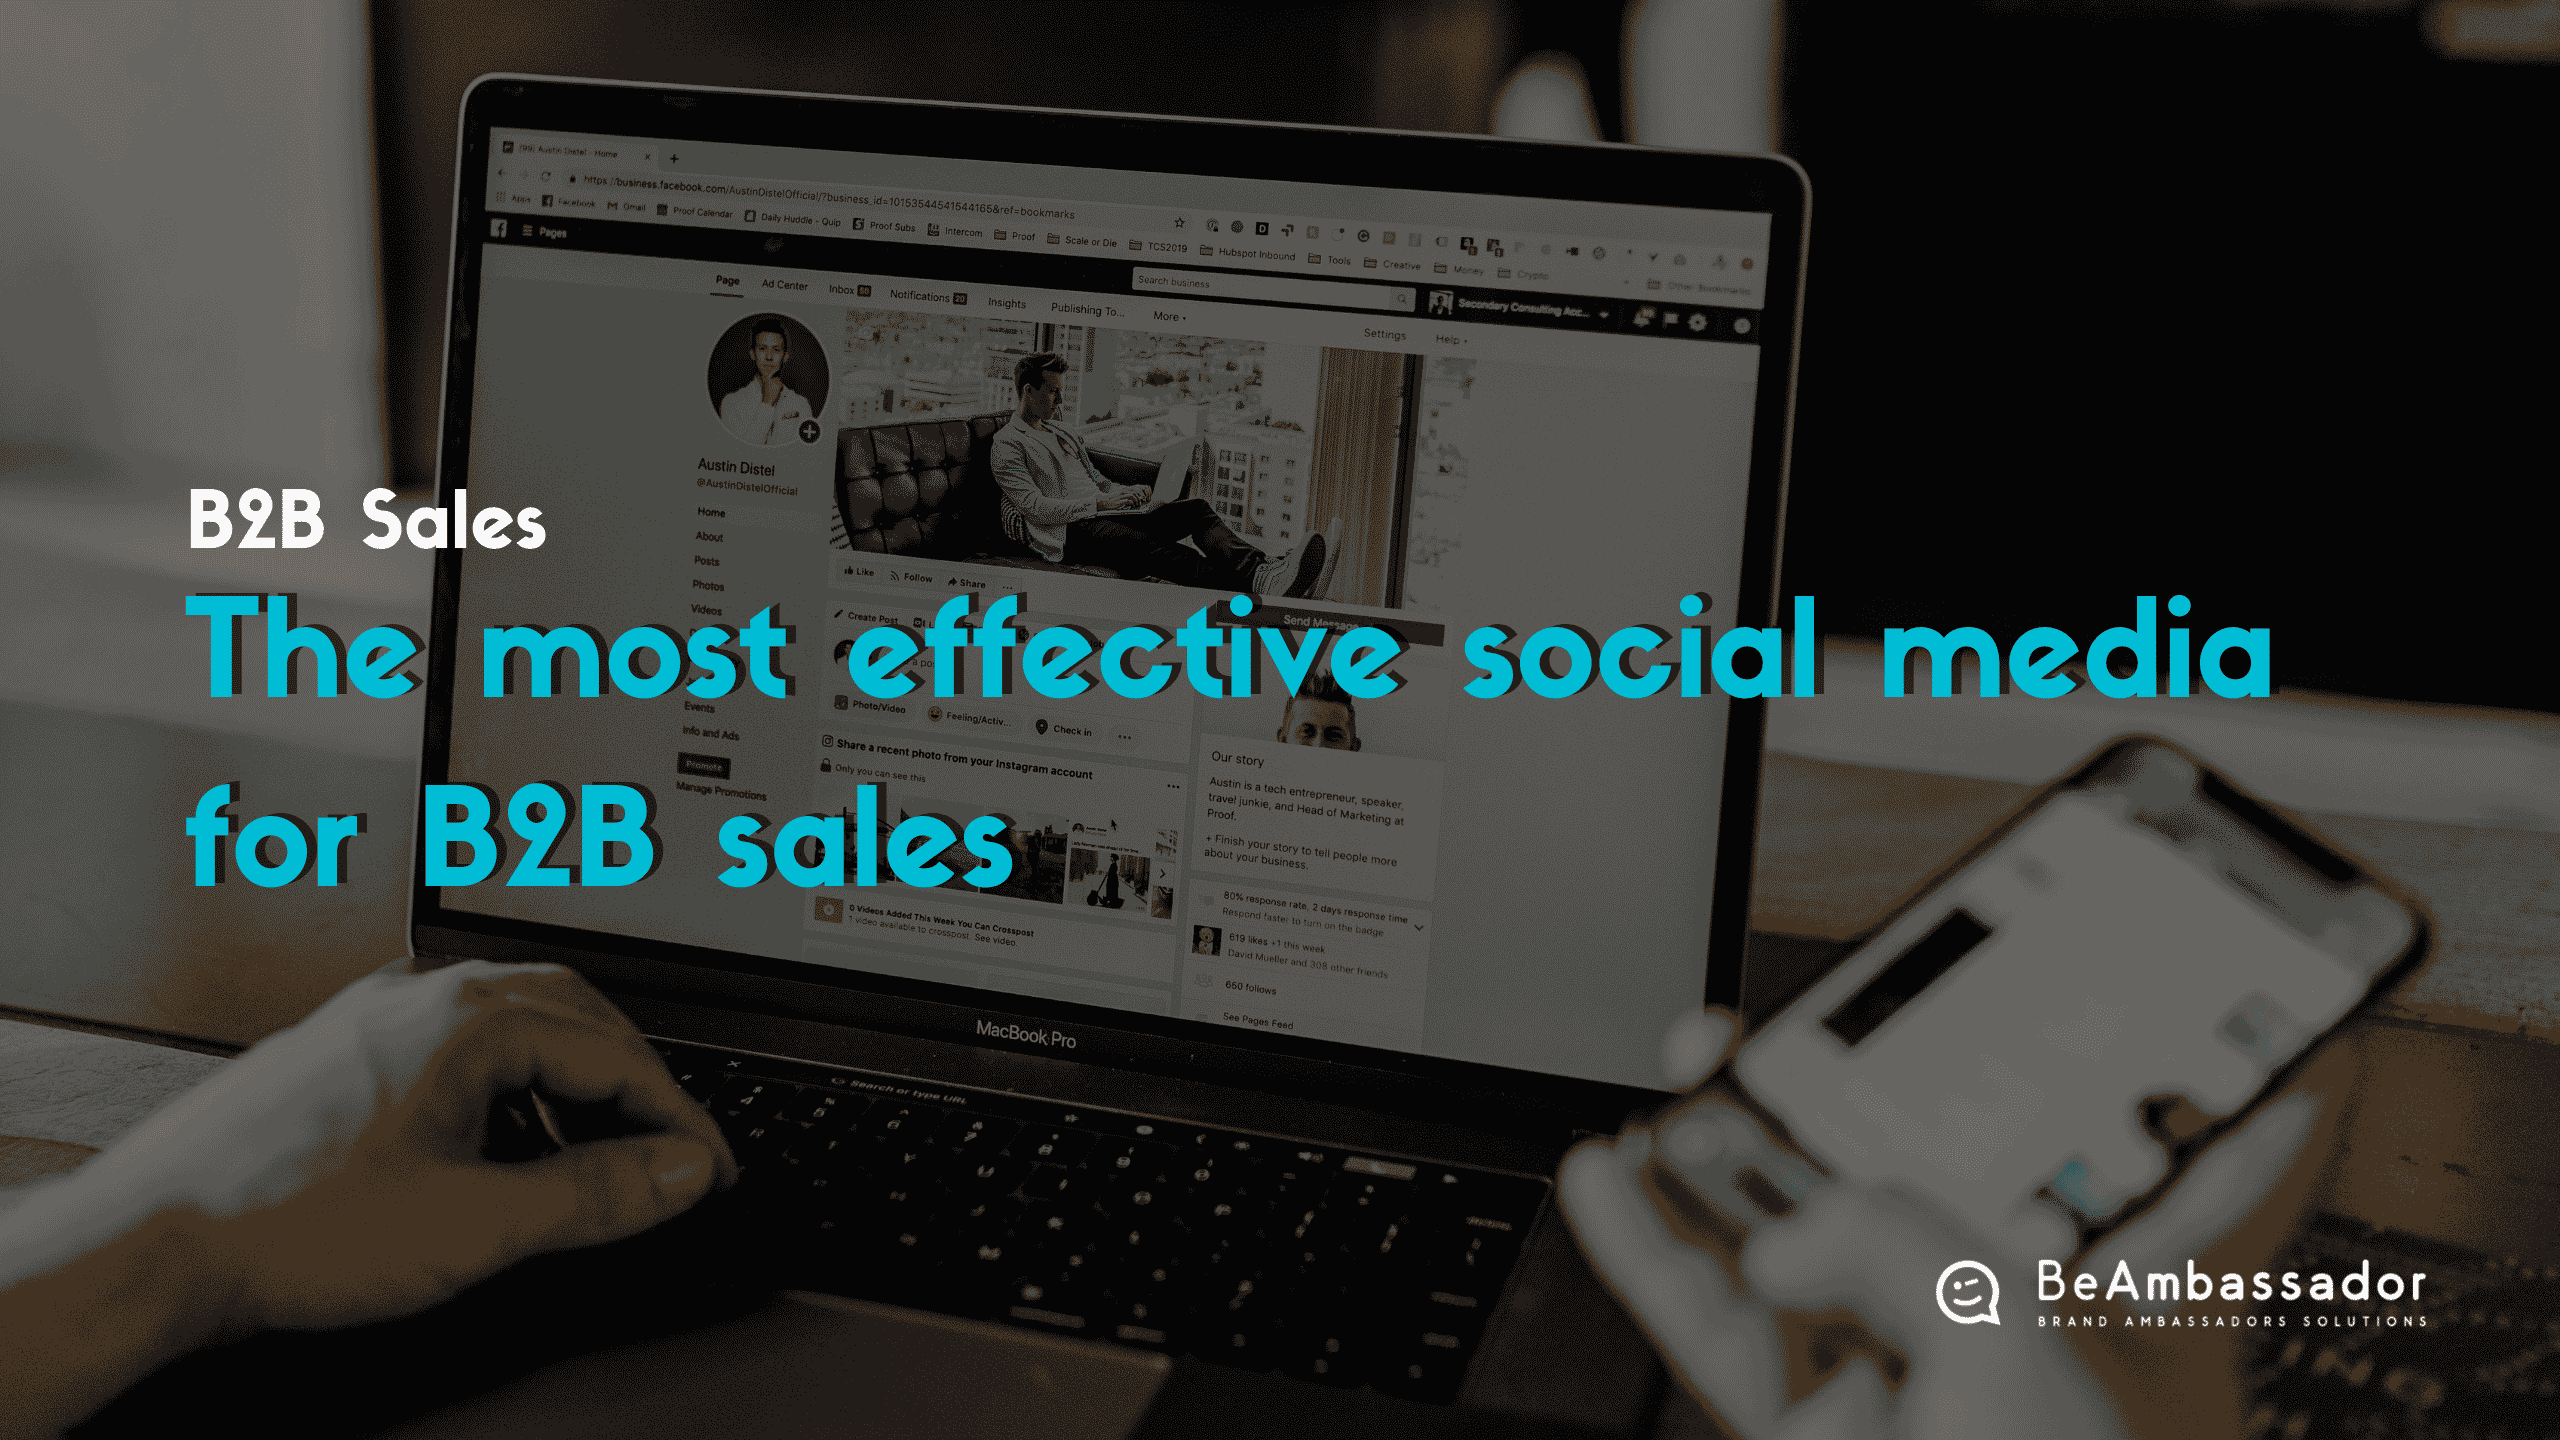 Discover the most effective social media for B2B sales